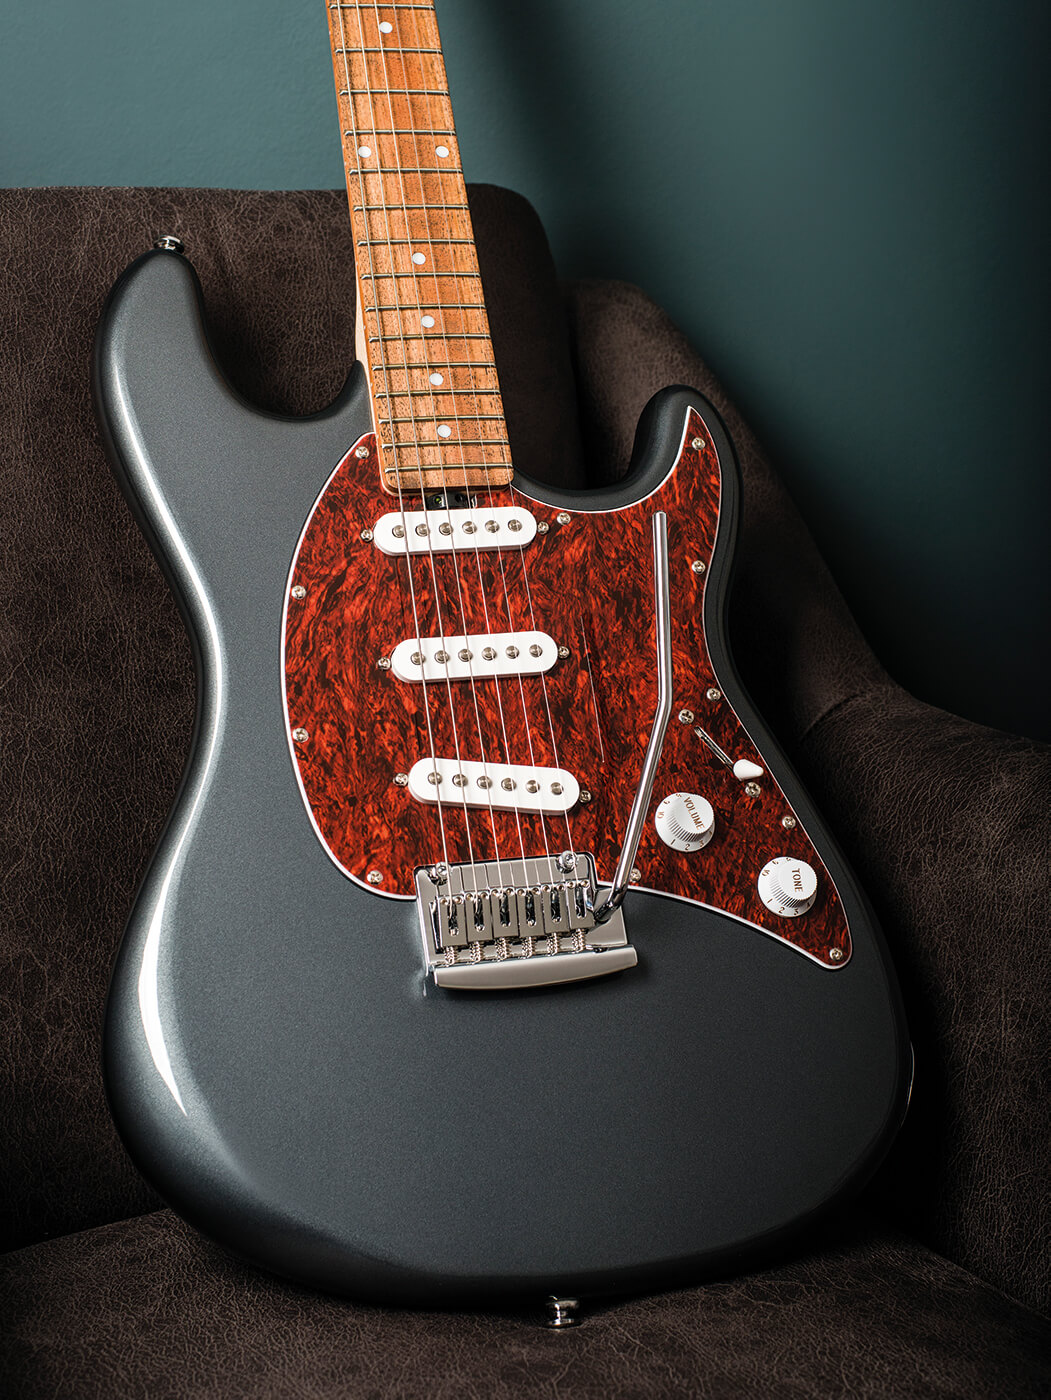 review sterling by music man cutlass sss hss all things guitar. Black Bedroom Furniture Sets. Home Design Ideas